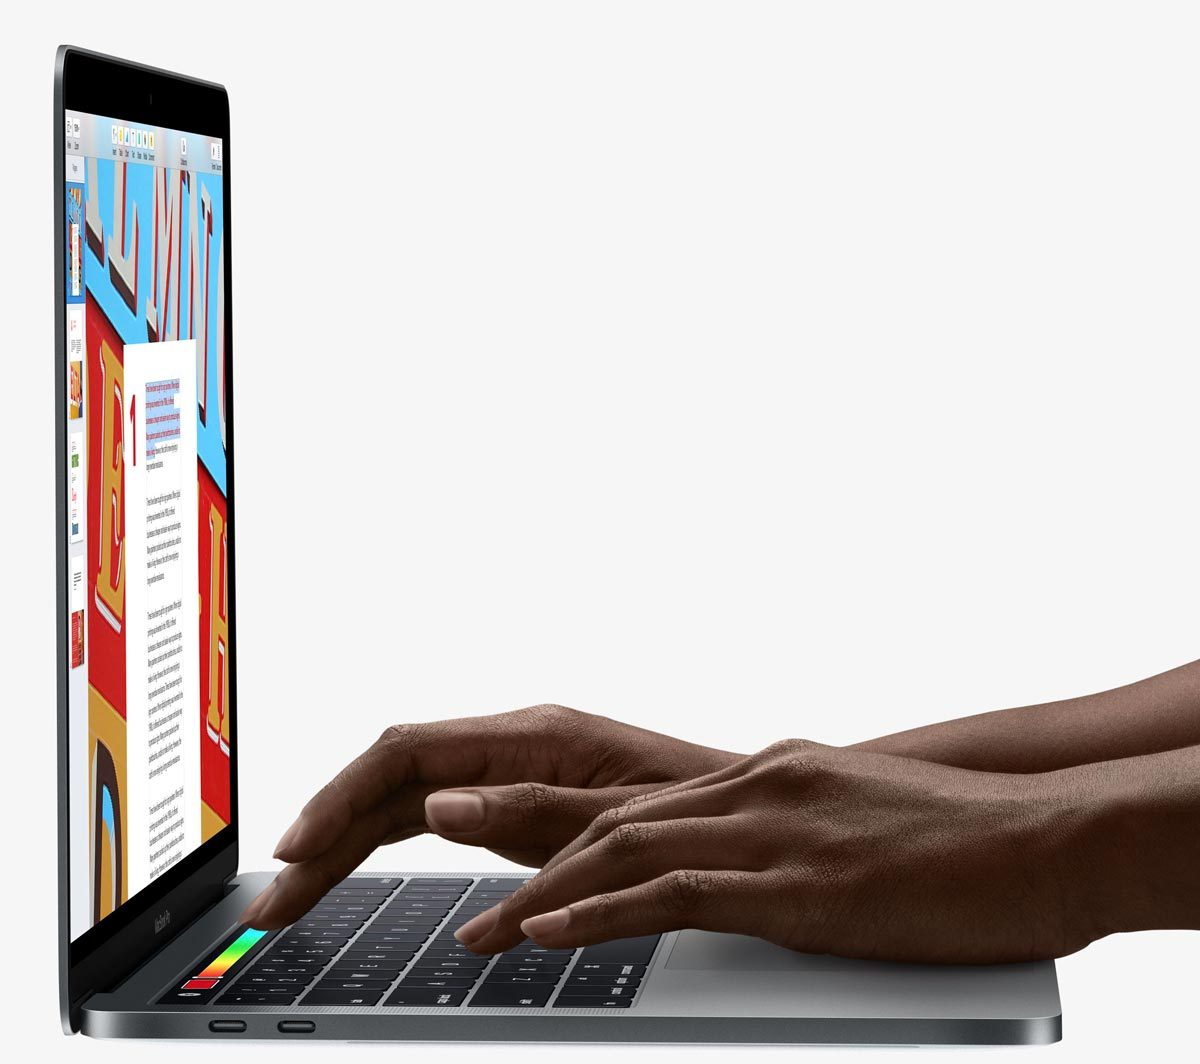 Using Touch Bar on MacBook Pro